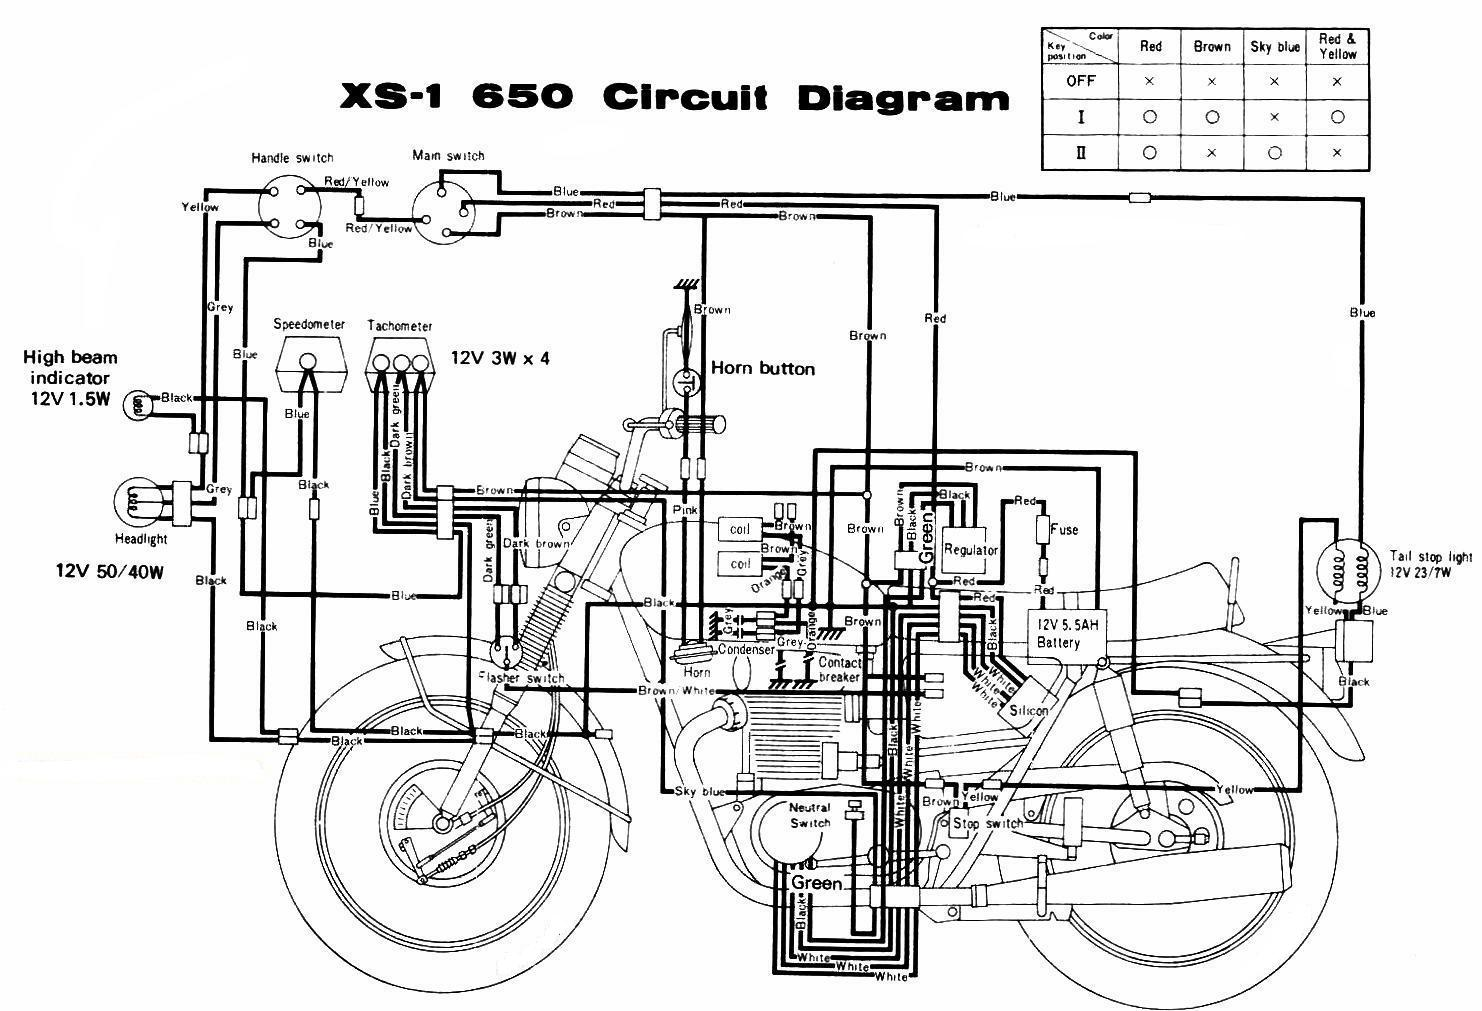 Wiring Diagrams 83 Chevy Truck Diagram 1970 Xs1 Page 1